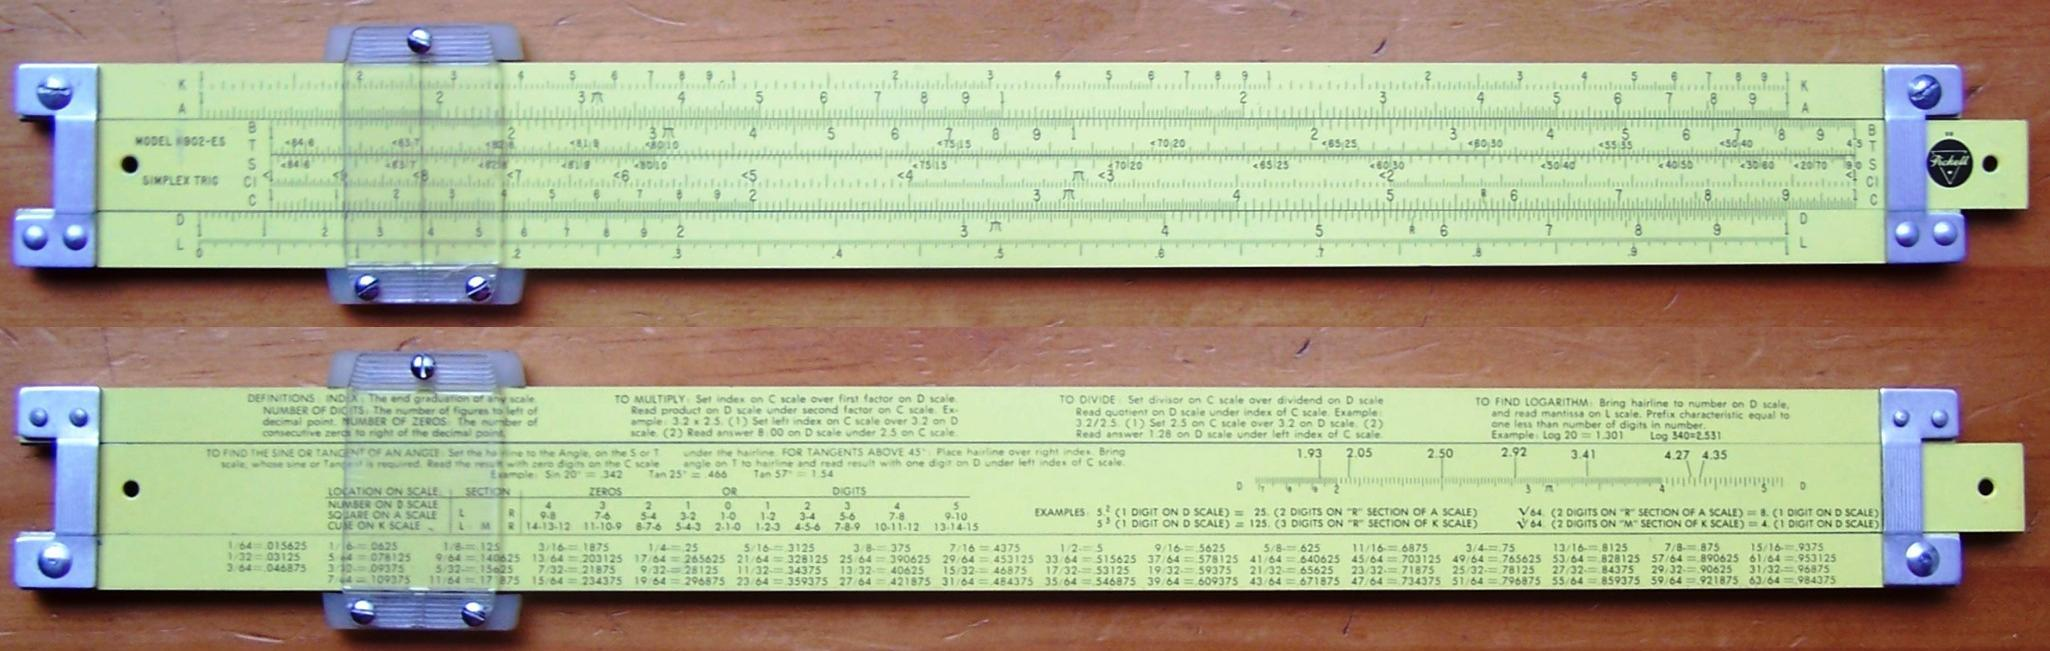 dating pickett slide rules Anyone remember the scene from the movie dr strangelove where the named doctor gets no, i haven't is it about slide rules in general or the k&e, pickett.